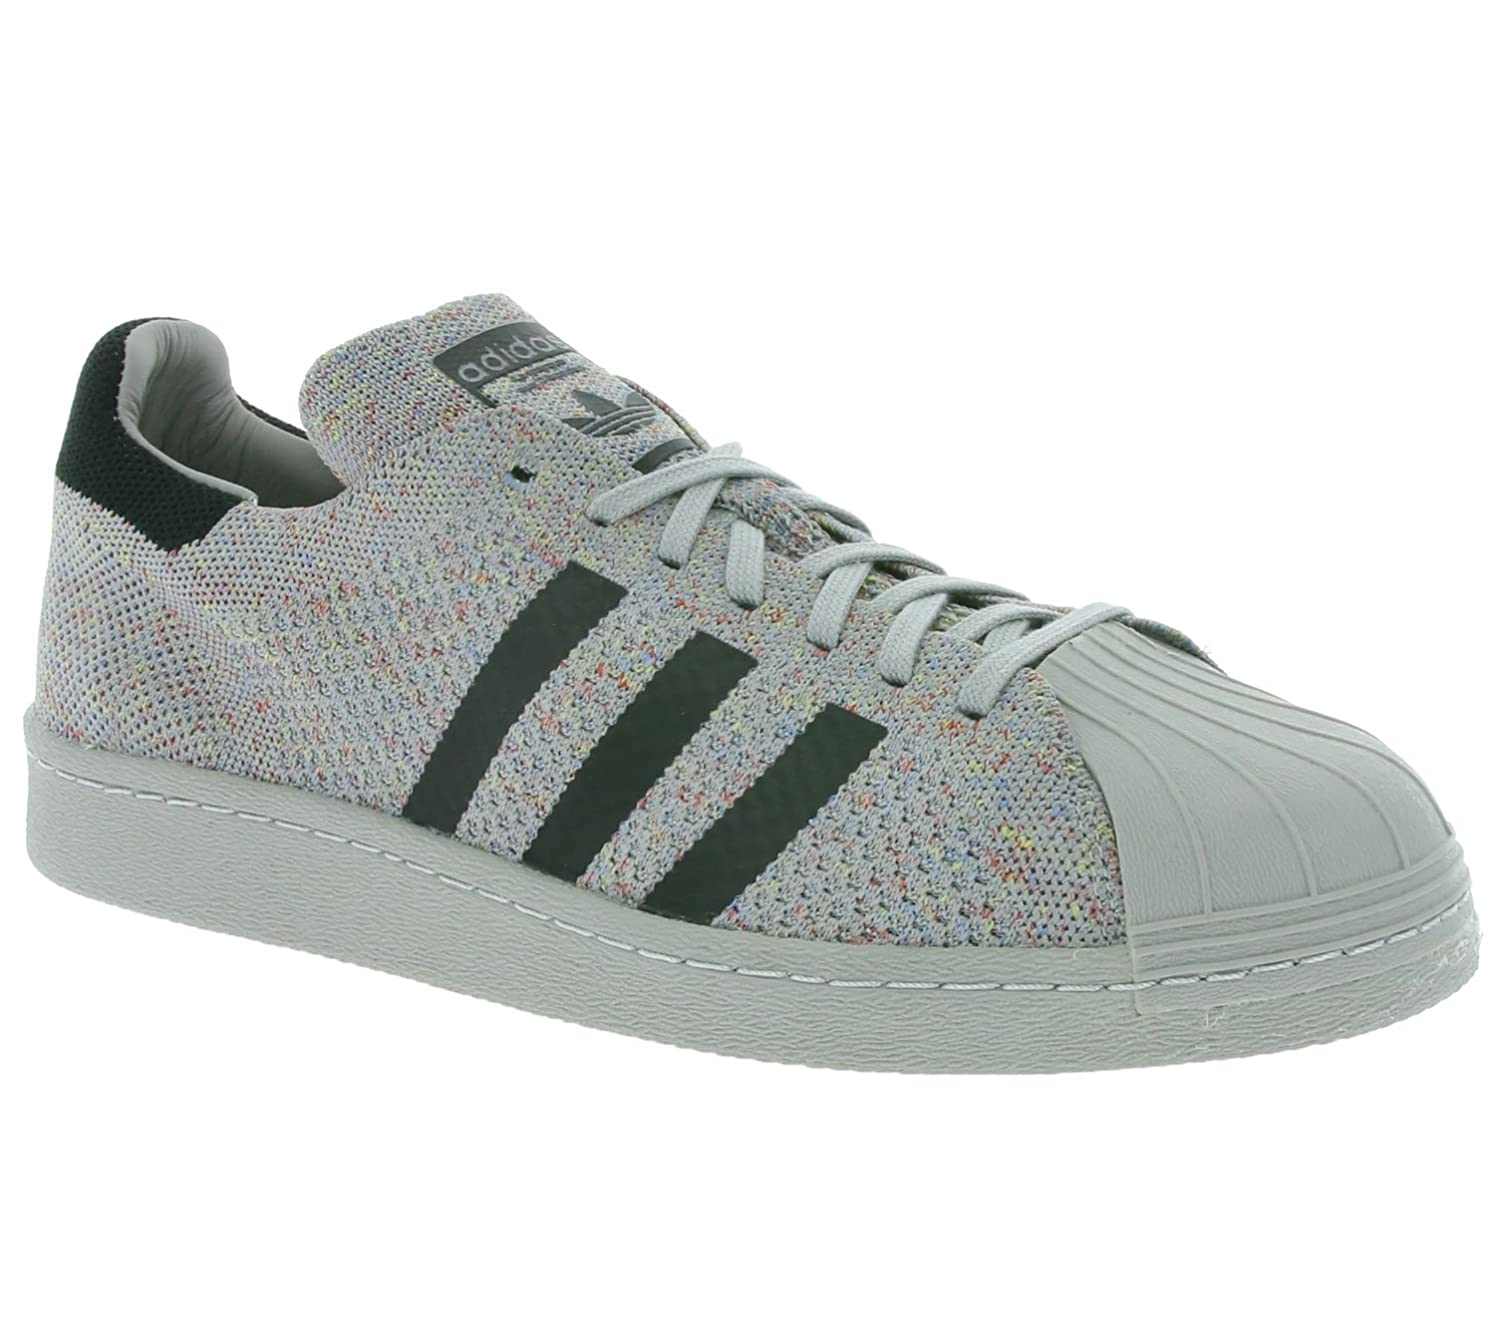 best sneakers 76a96 2bef9 adidas Superstar 80 S Primeknit Trainers Grey 11 UK  Amazon.co.uk  Shoes    Bags